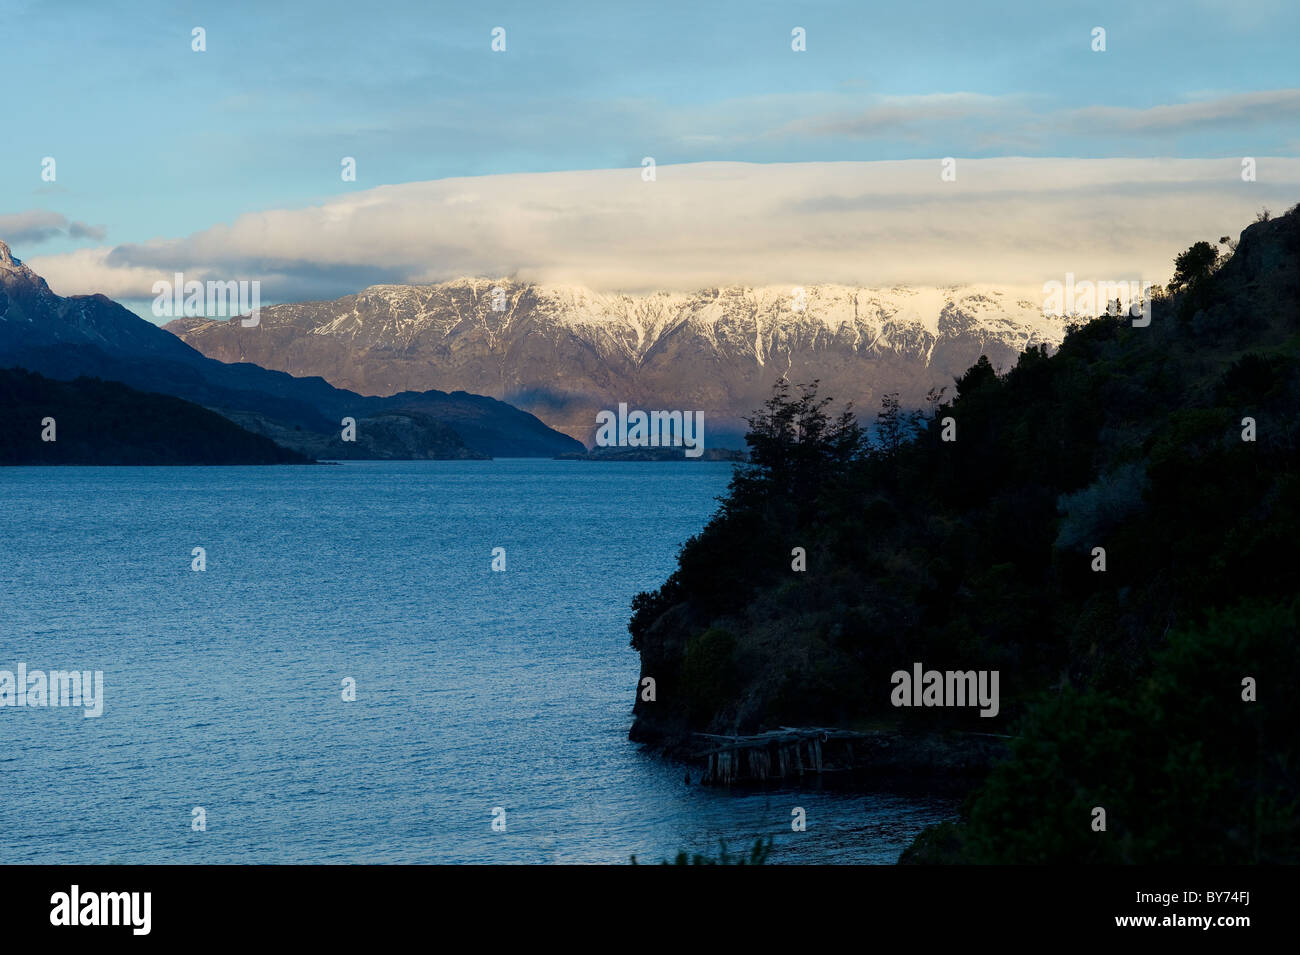 Cattle on farm by Lake General Carrera, Andes Mountains, Aysen, Patagonia, Chile - Stock Image